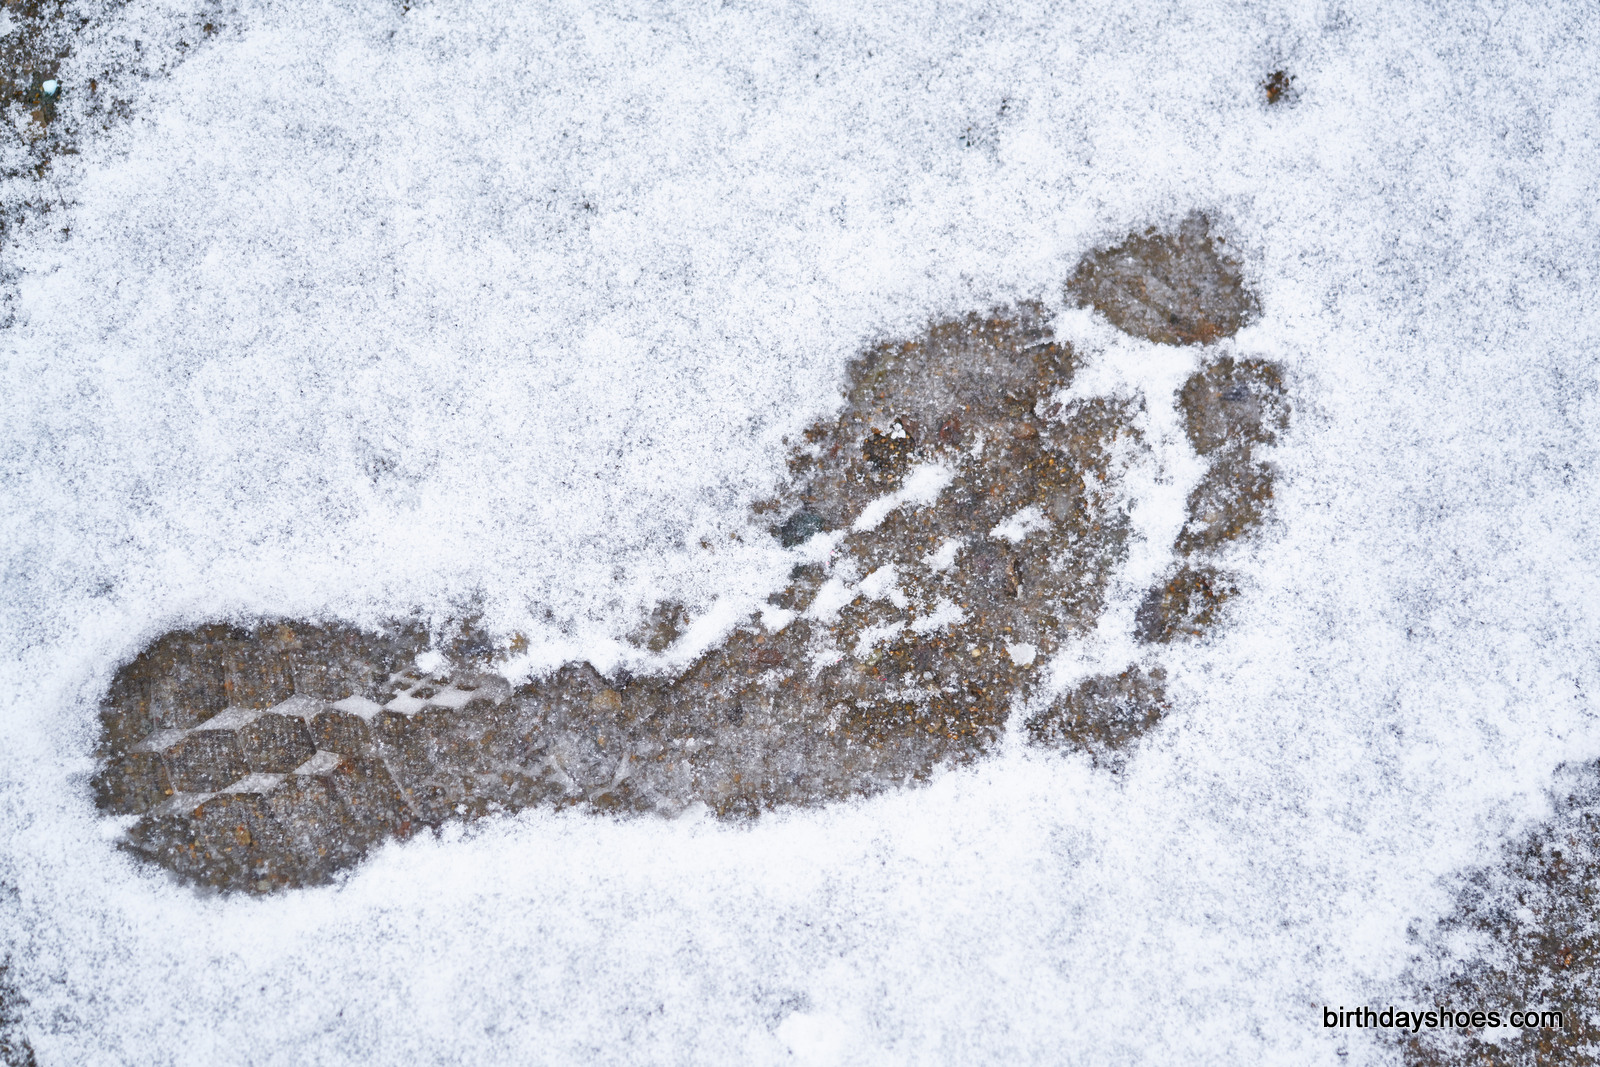 A primal footprint. There must be a fast yeti somewhere in beantown